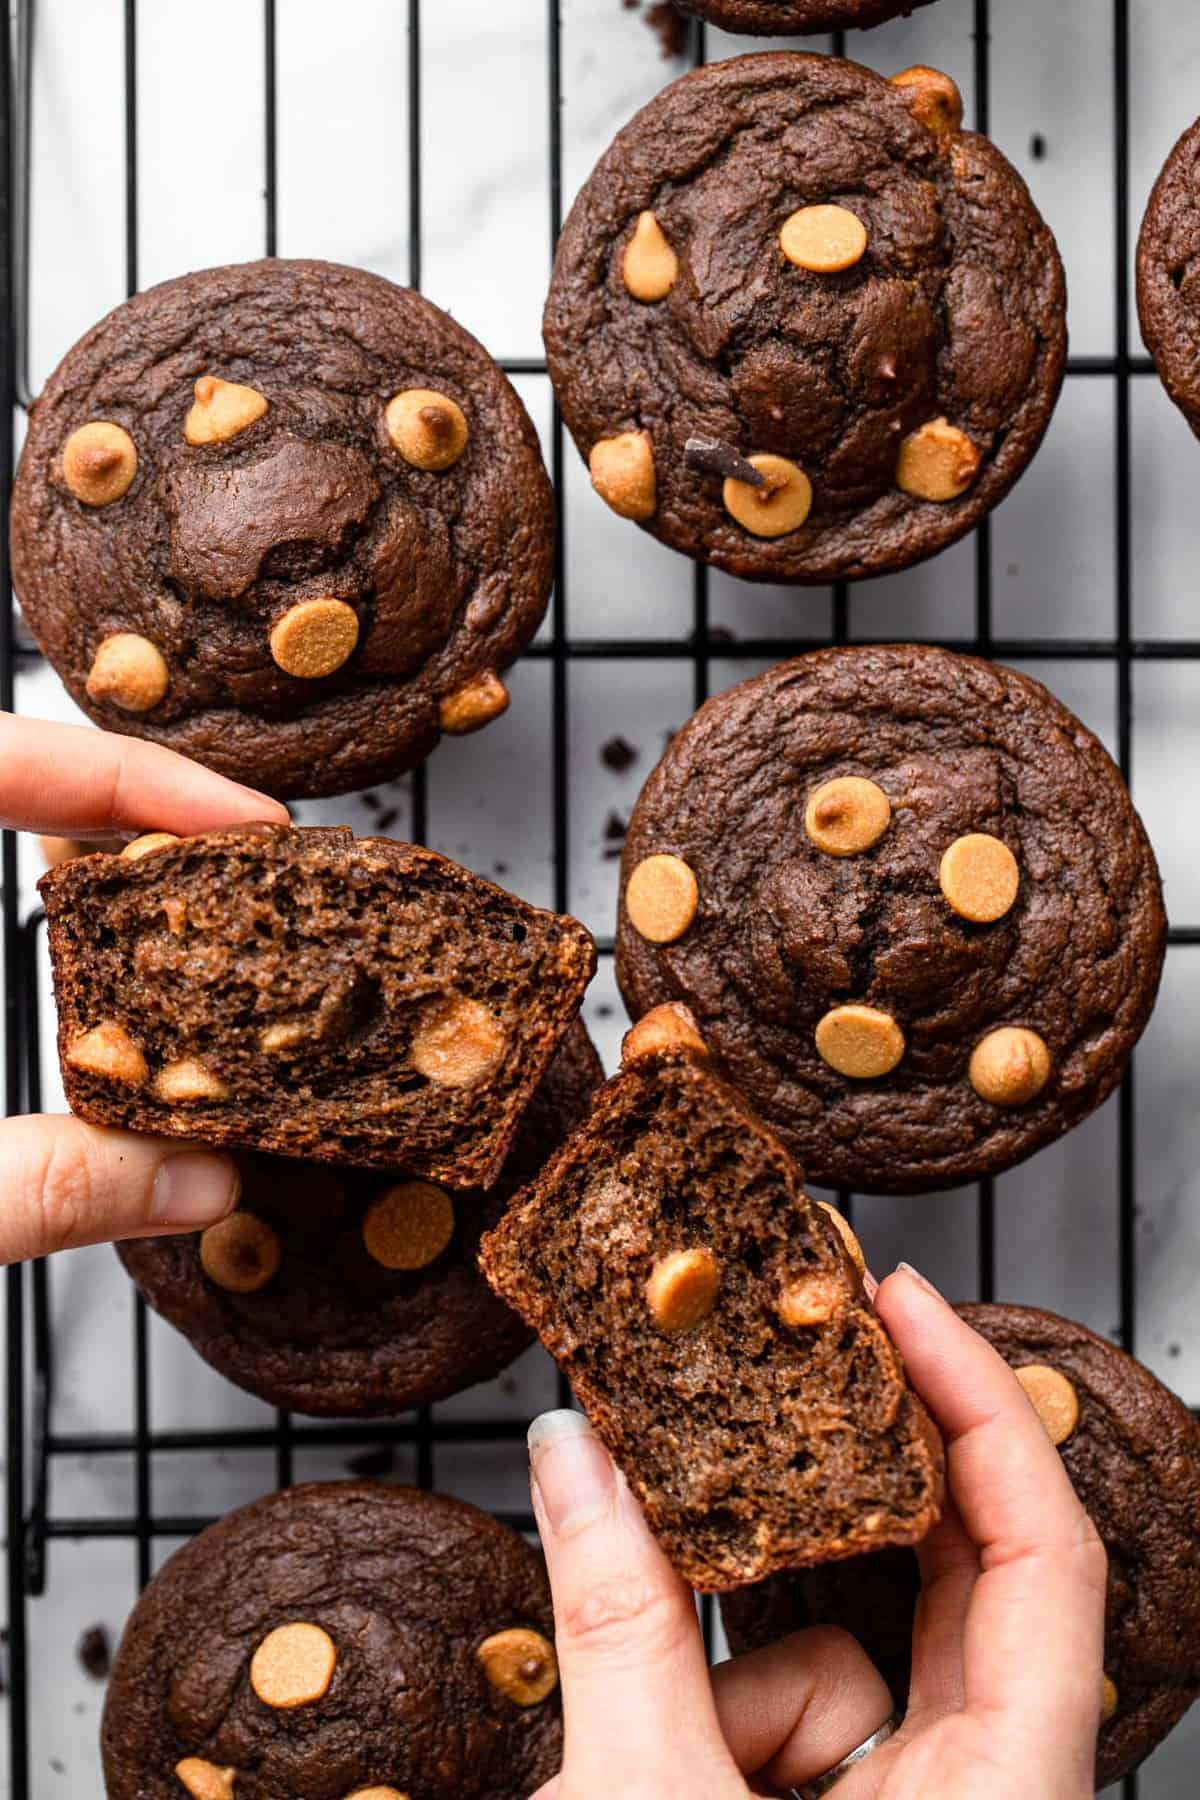 a hand holding healthy chocolate peanut butter muffins that are ripped in half